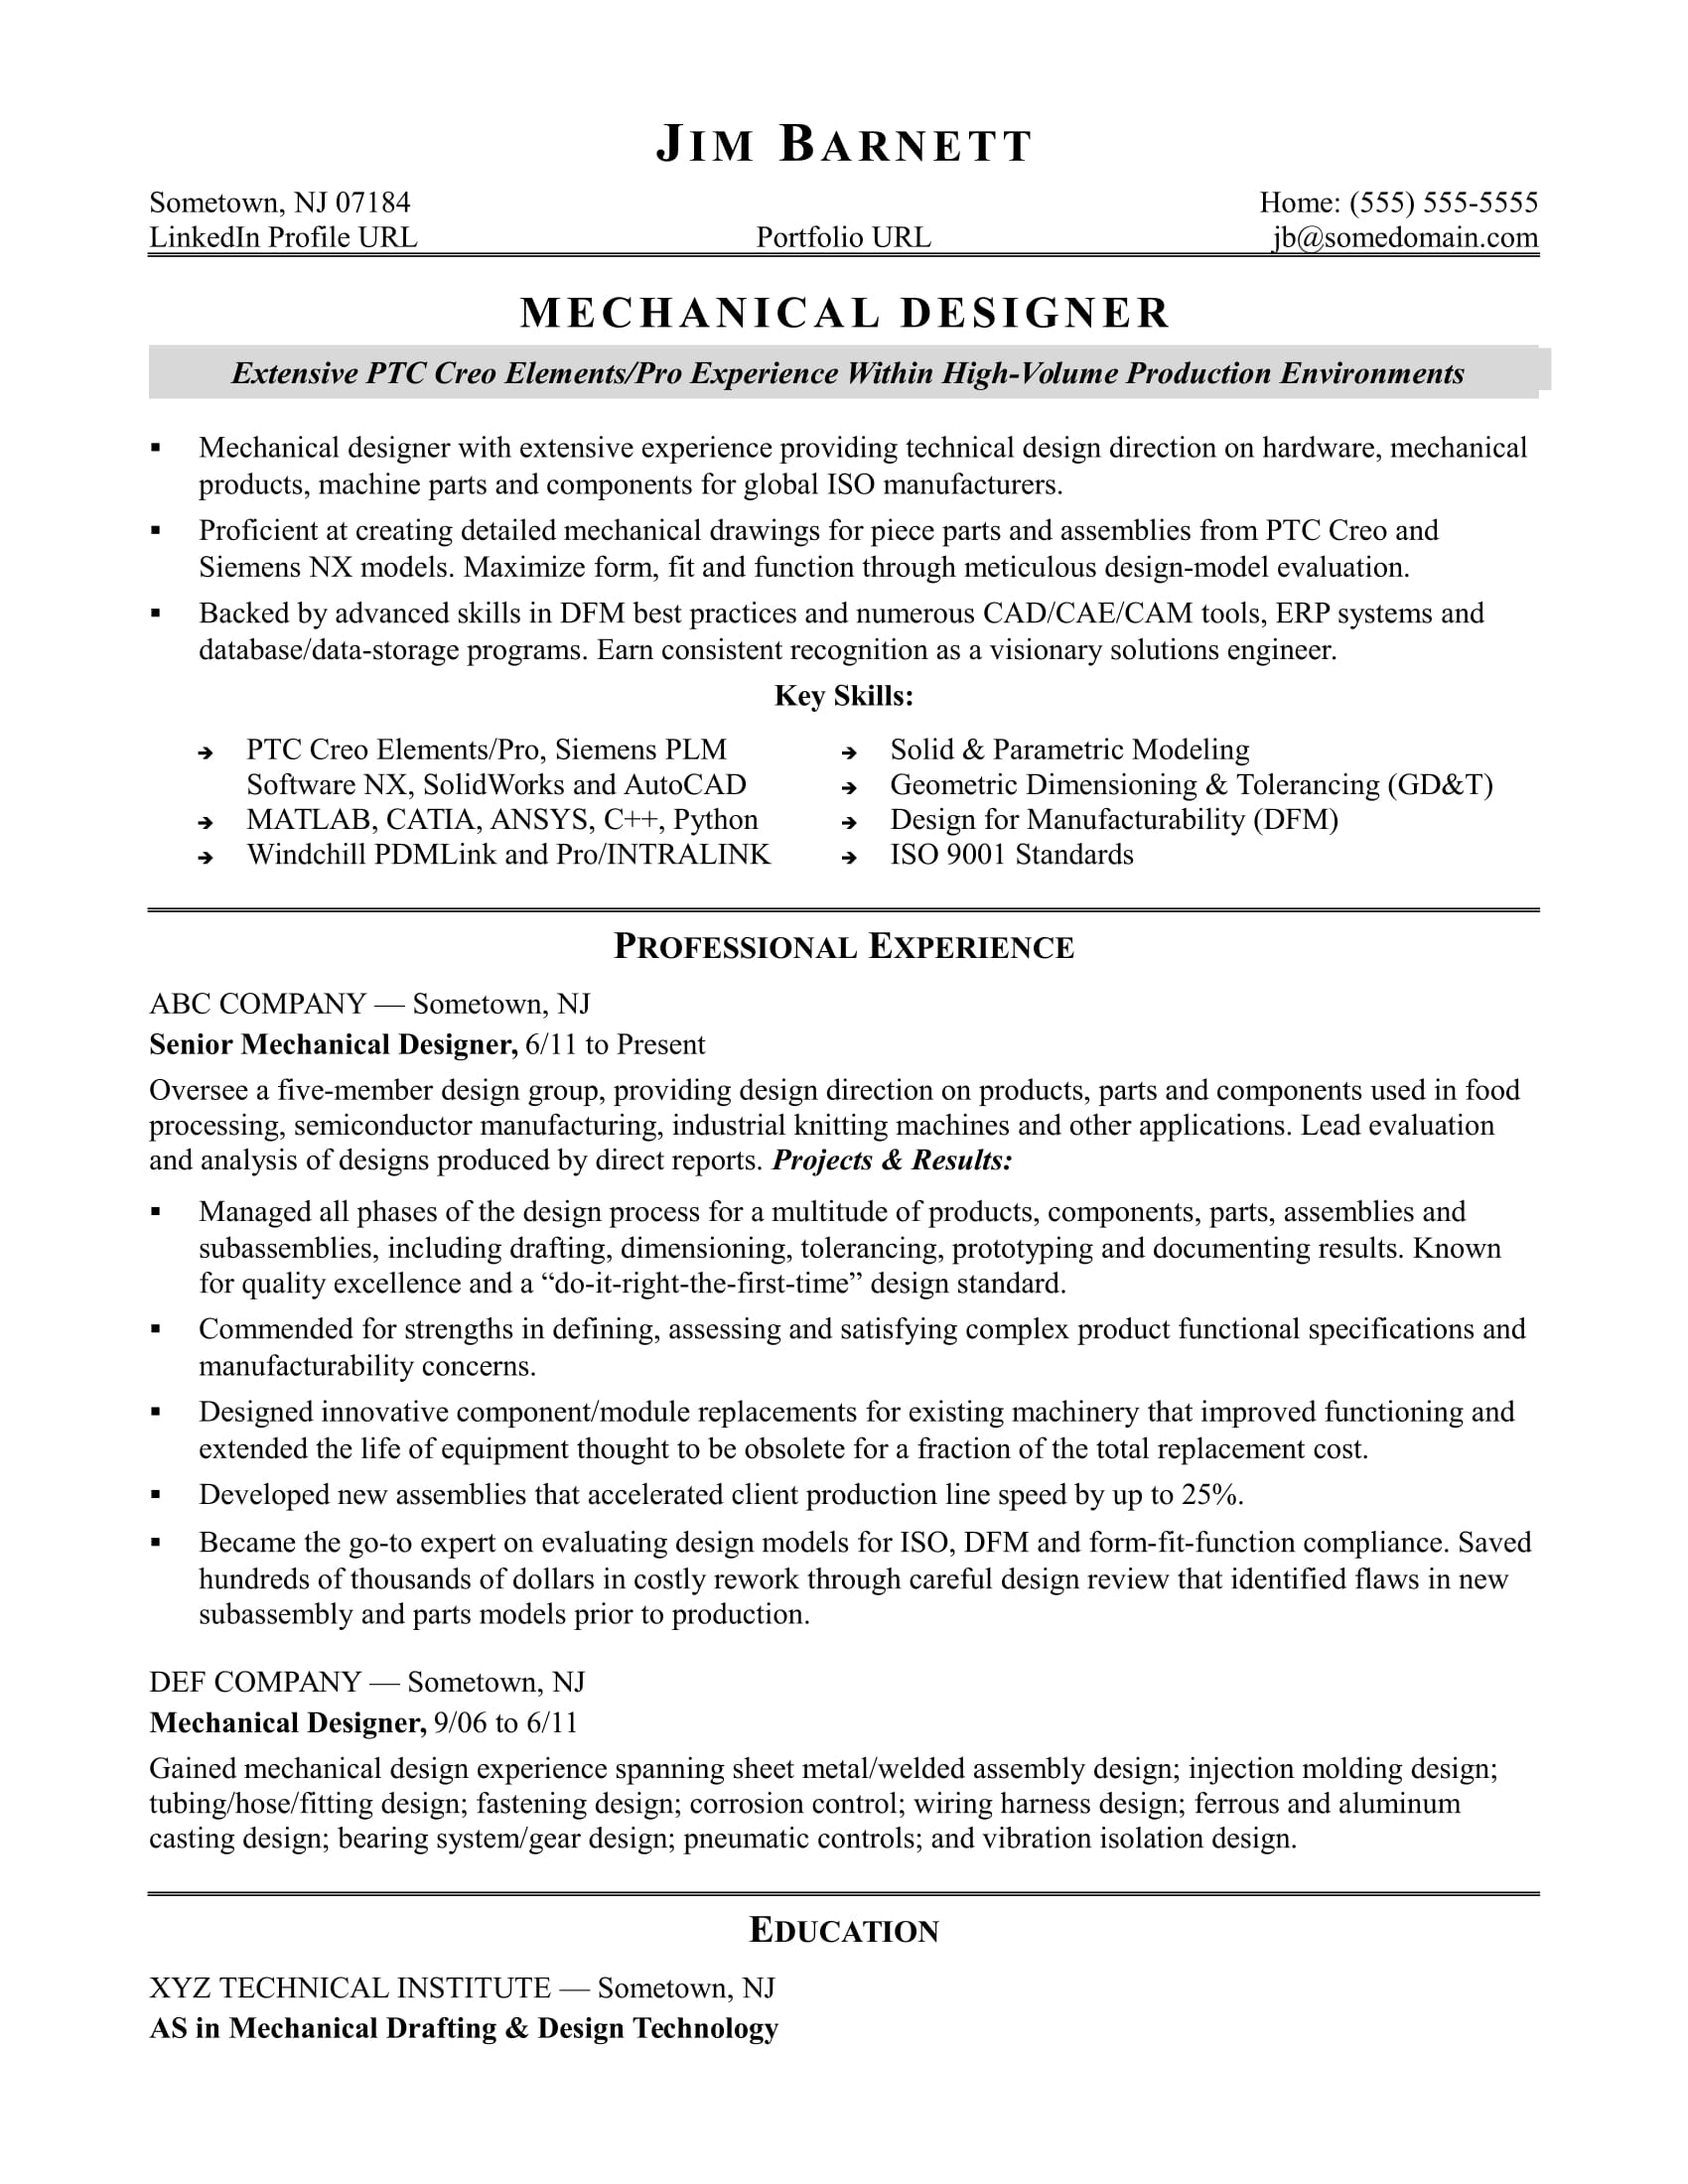 Aircraft Sheet Metal Resume - Sample Resume for An Experienced Mechanical Designer